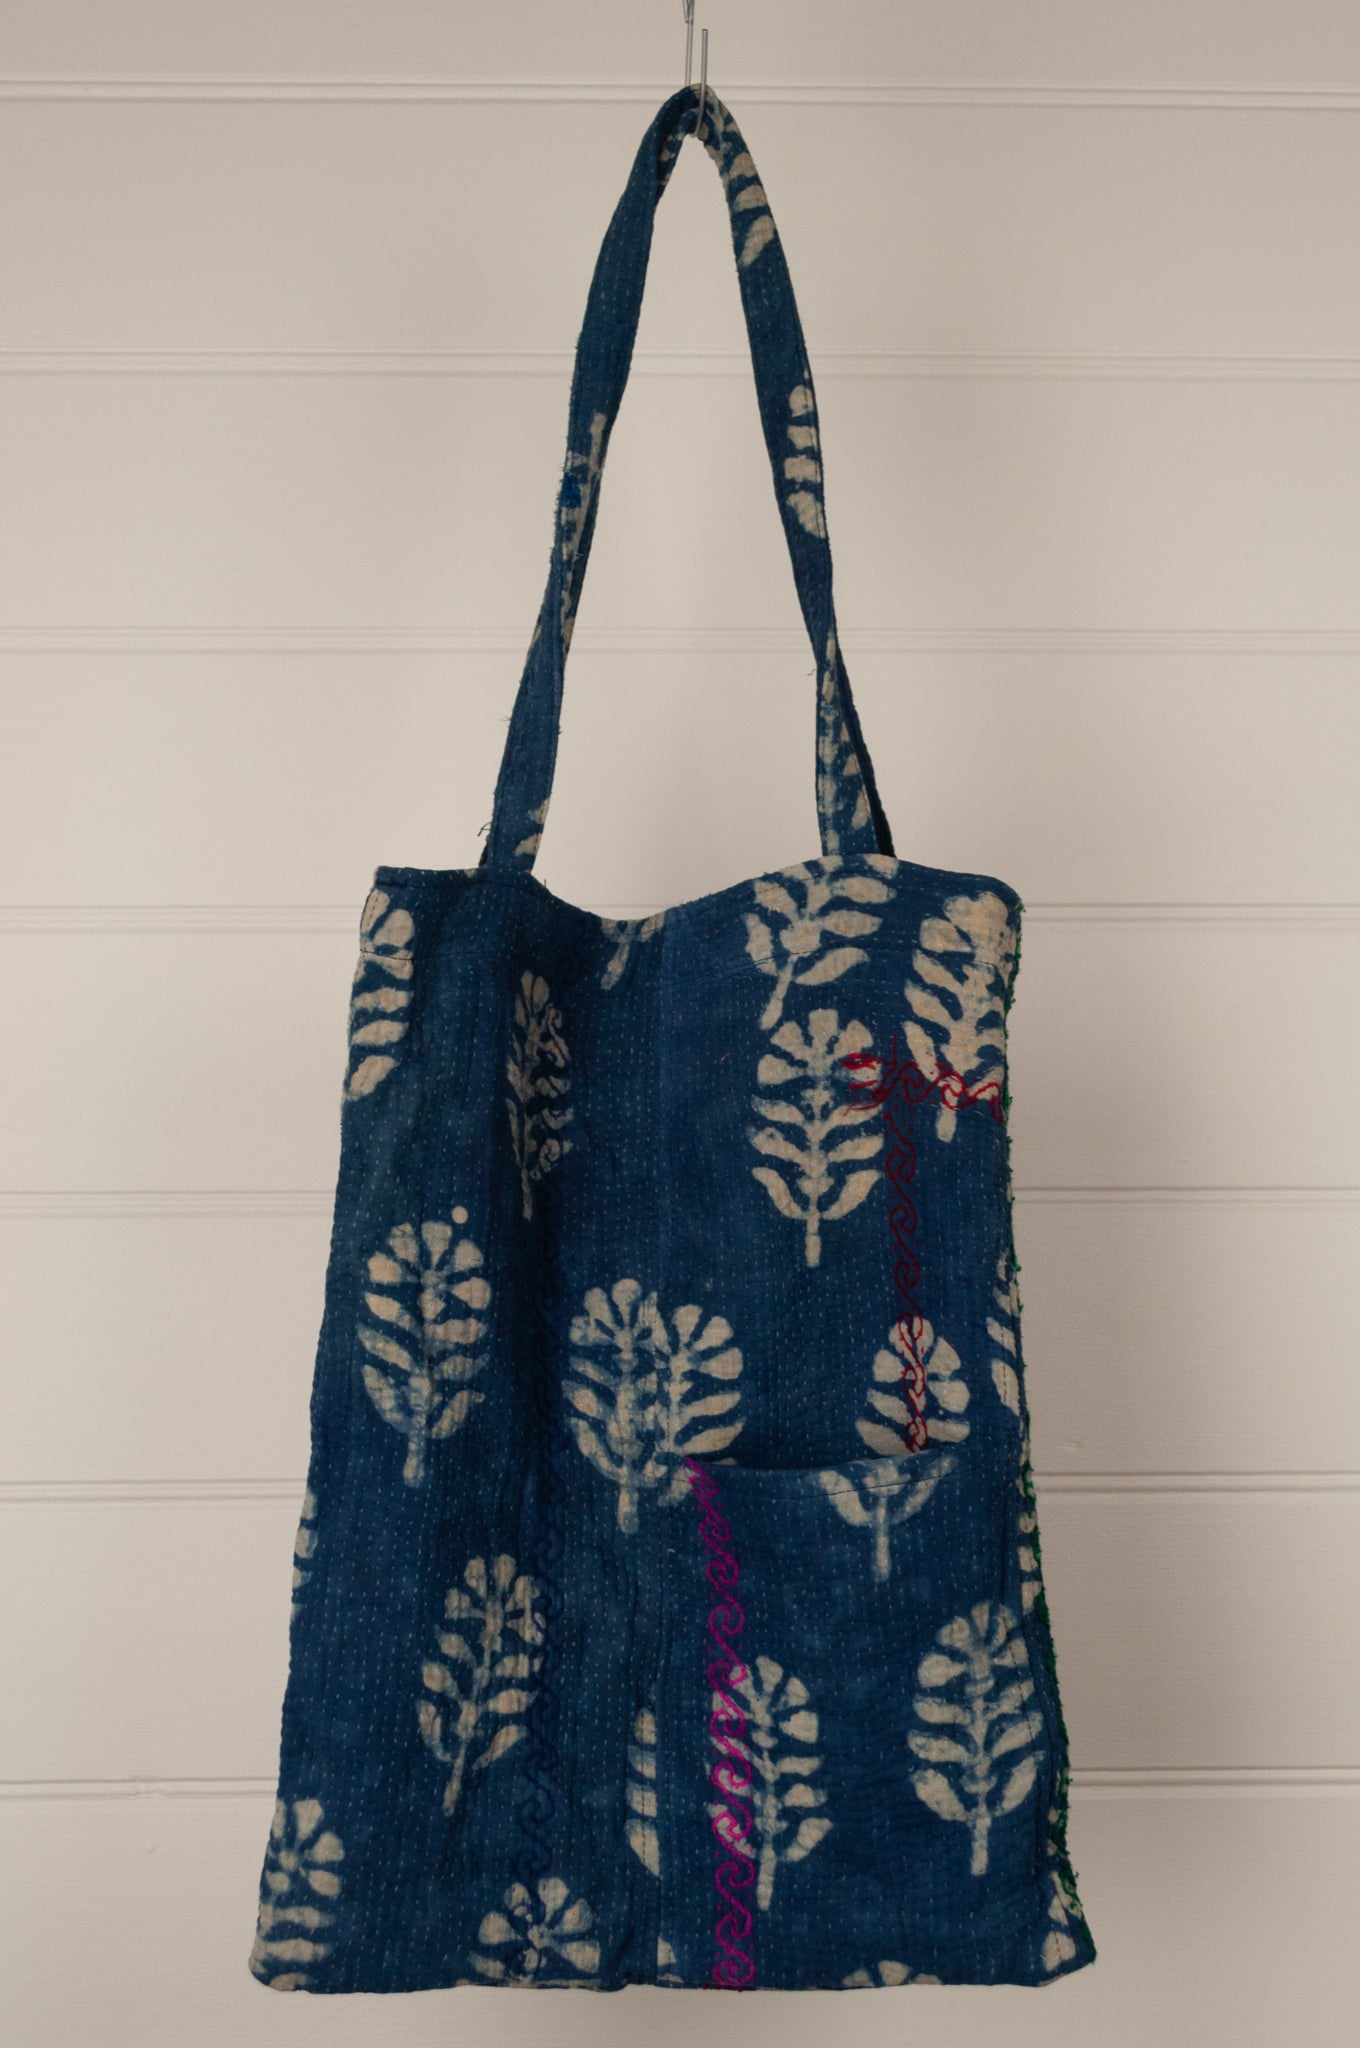 Vintage indigo kantha tote bag with internal and external pocket.